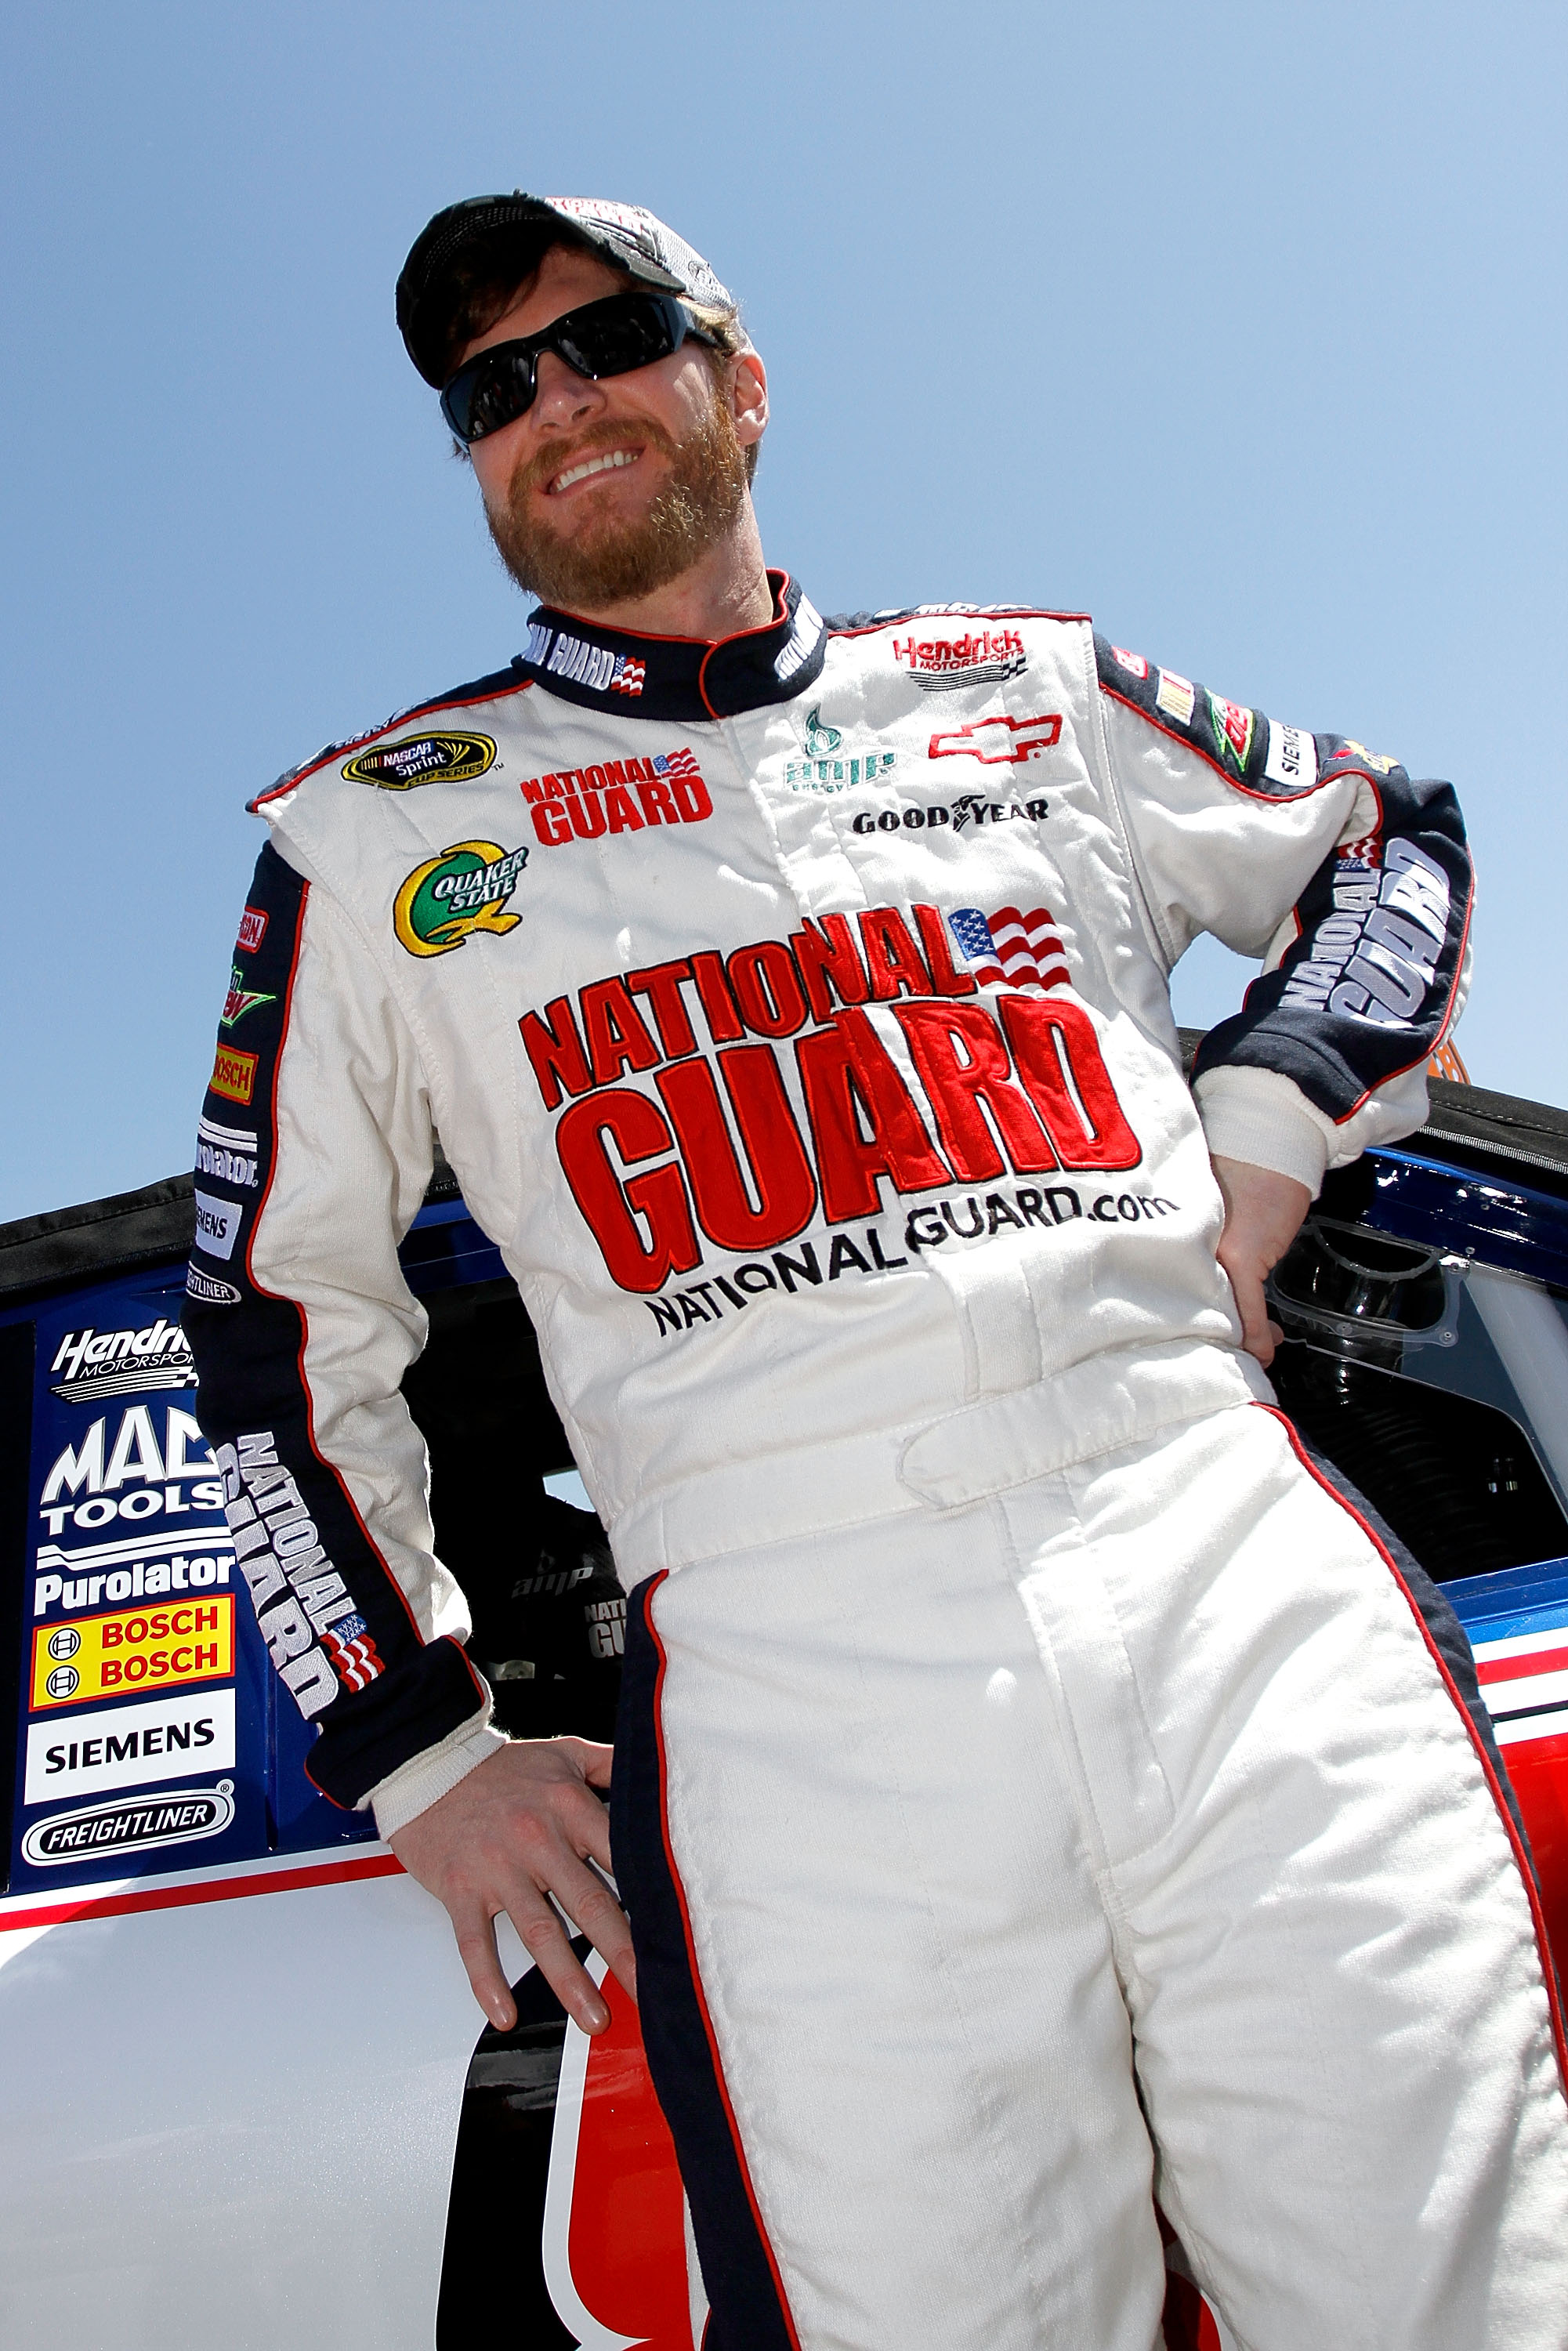 TALLADEGA, AL - APRIL 17:  Dale Earnhardt Jr., driver of the #88 National Guard/Amp Energy Chevrolet, stands on the grid prior to the start of the NASCAR Sprint Cup Series Aaron's 499 at Talladega Superspeedway on April 17, 2011 in Talladega, Alabama.  (P